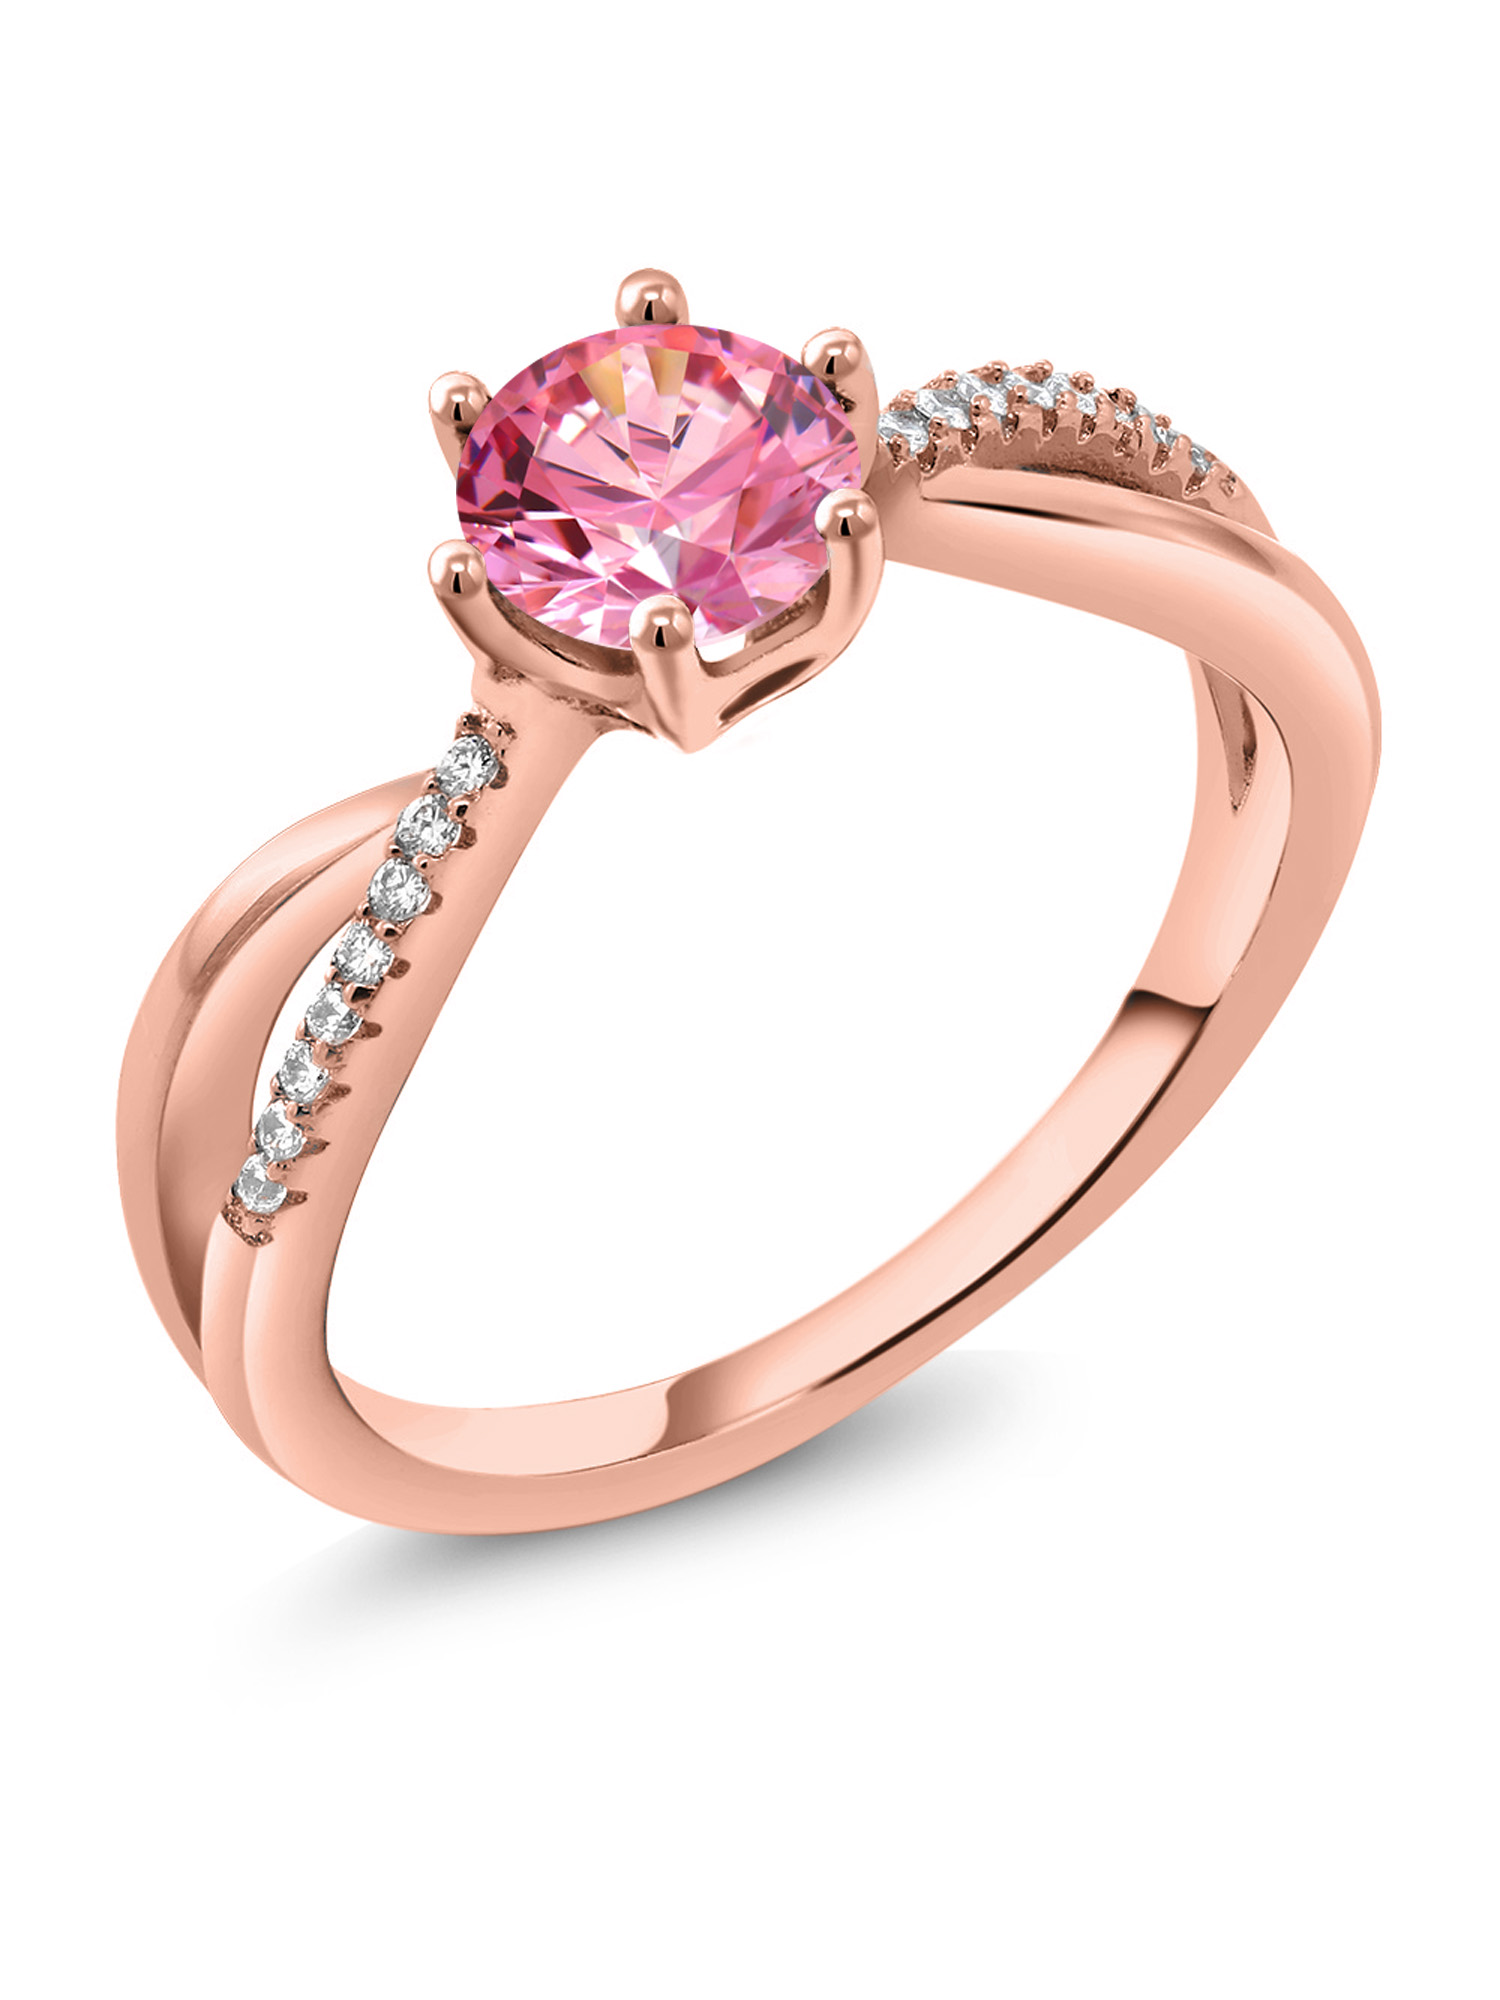 0.84 Ct Fancy Pink 925 Rose Gold Plated Silver Ring Made With Swarovski Zirconia